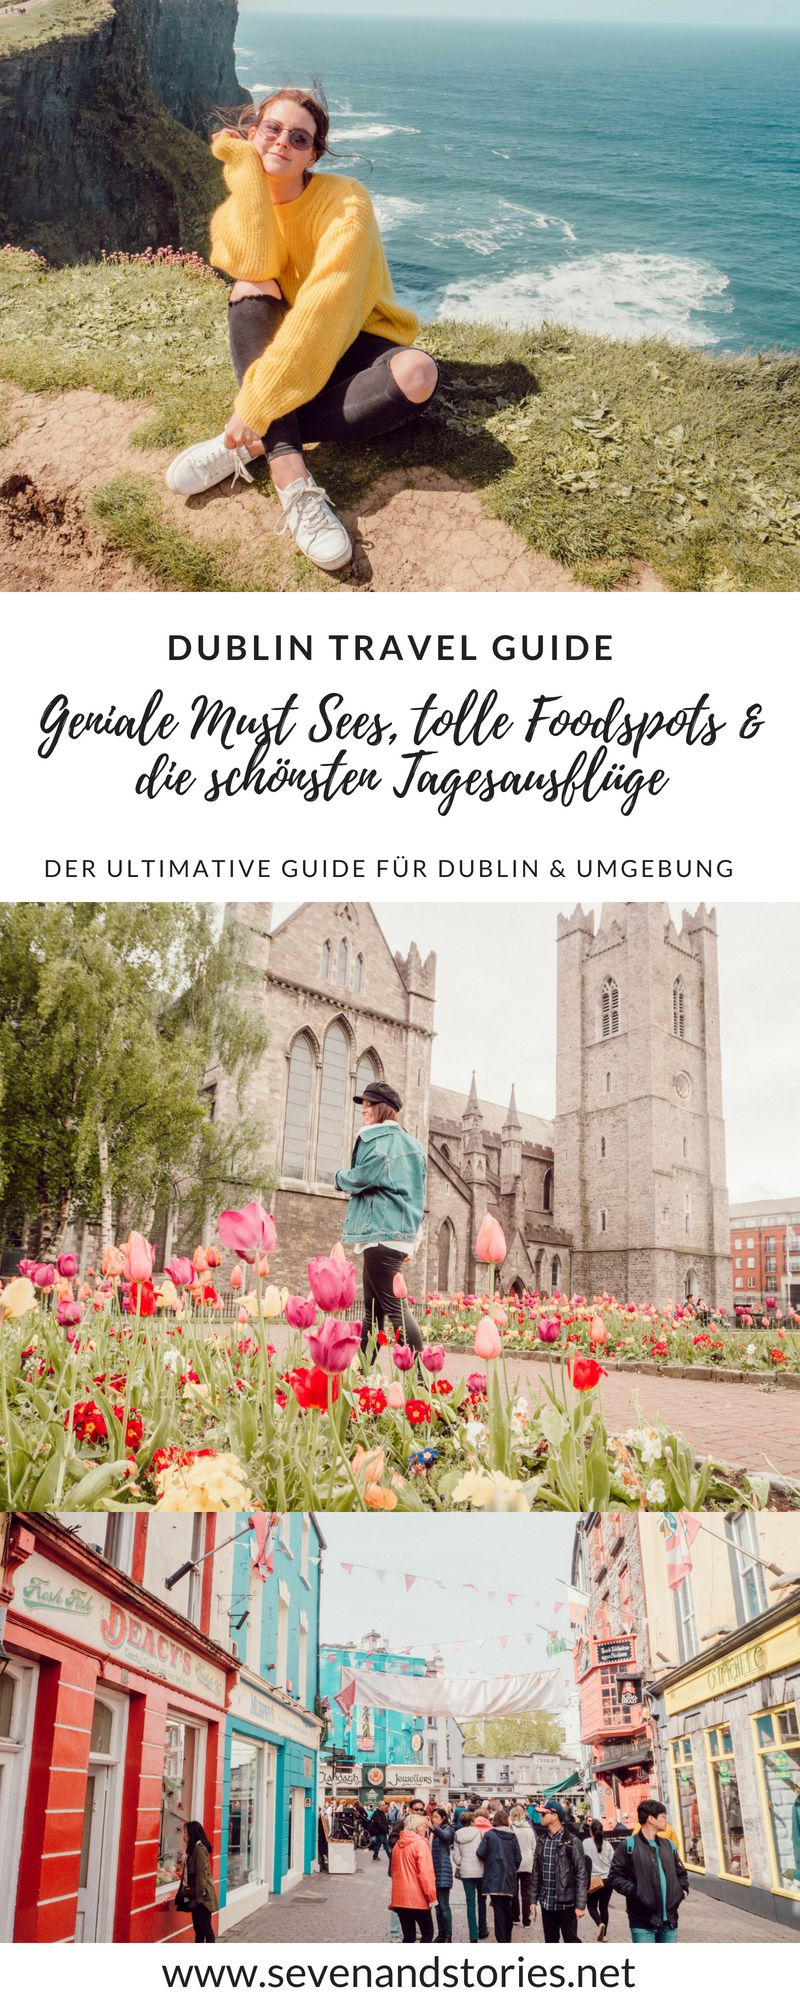 Photo of Dublin Travel Guide: Geniale Must Sees, Foodspots und Tipps, die du kennen musst